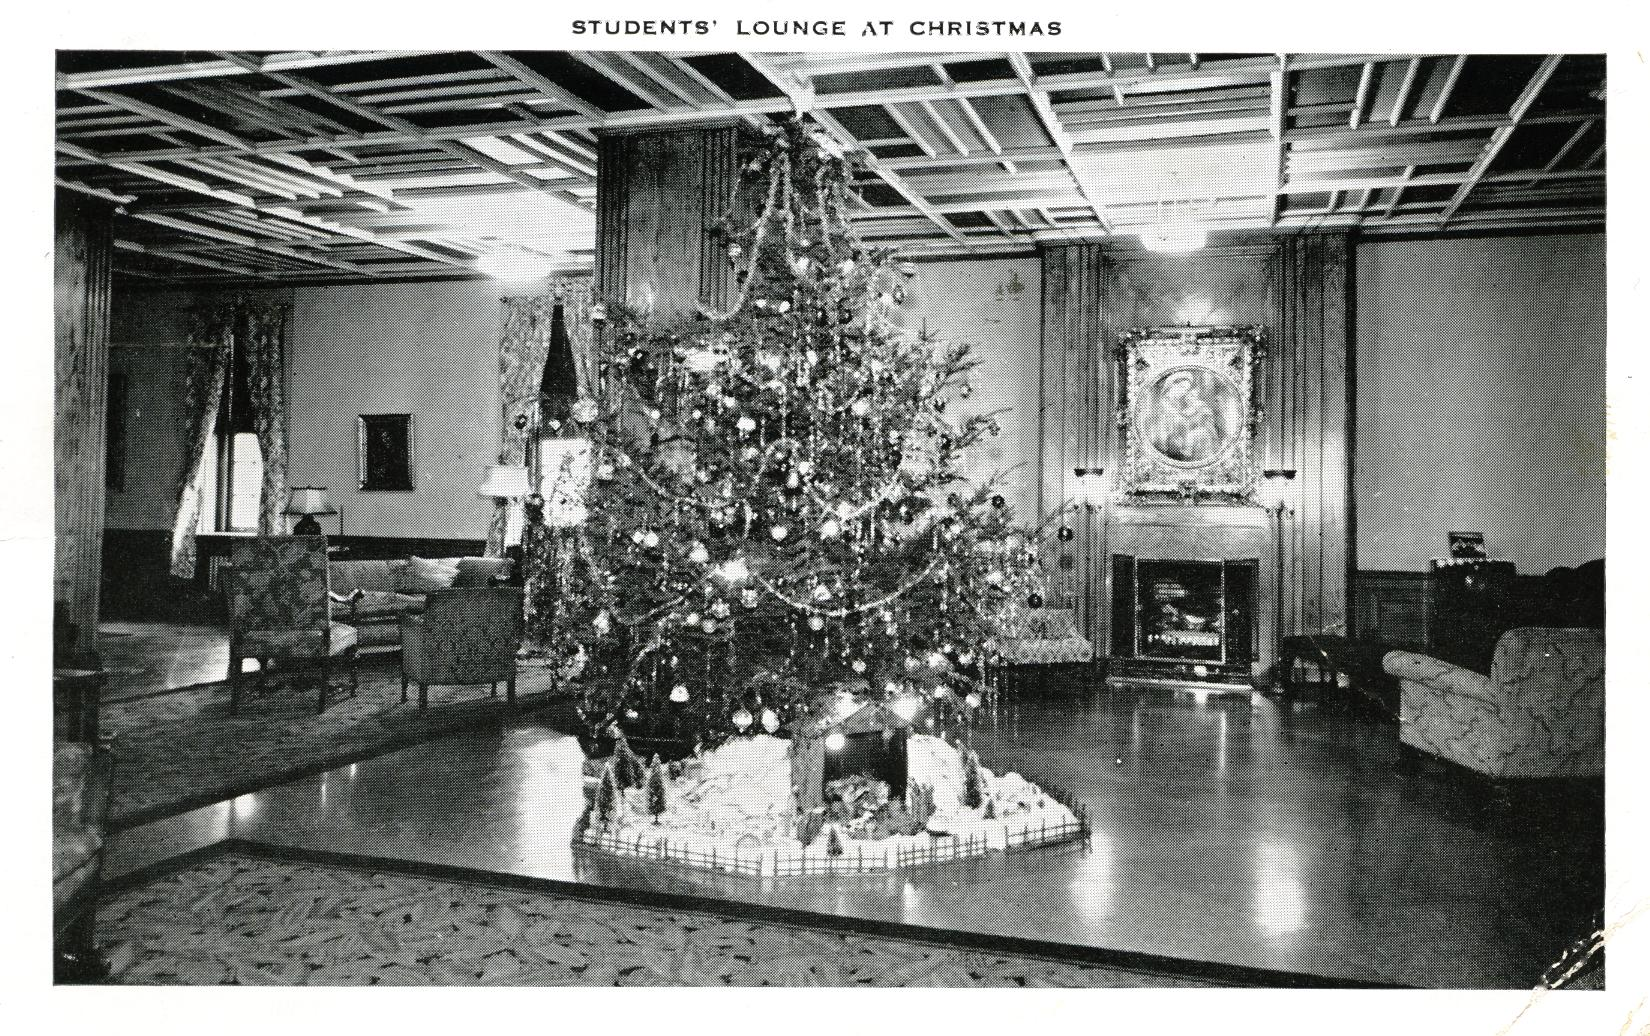 Students' Lounge at Christmas Saint Francis Hospital Pittsburgh PA Mary Immaculate Hall Nurses' Residence and School of Nursing, Saint Francis Hospital postmarked 1950